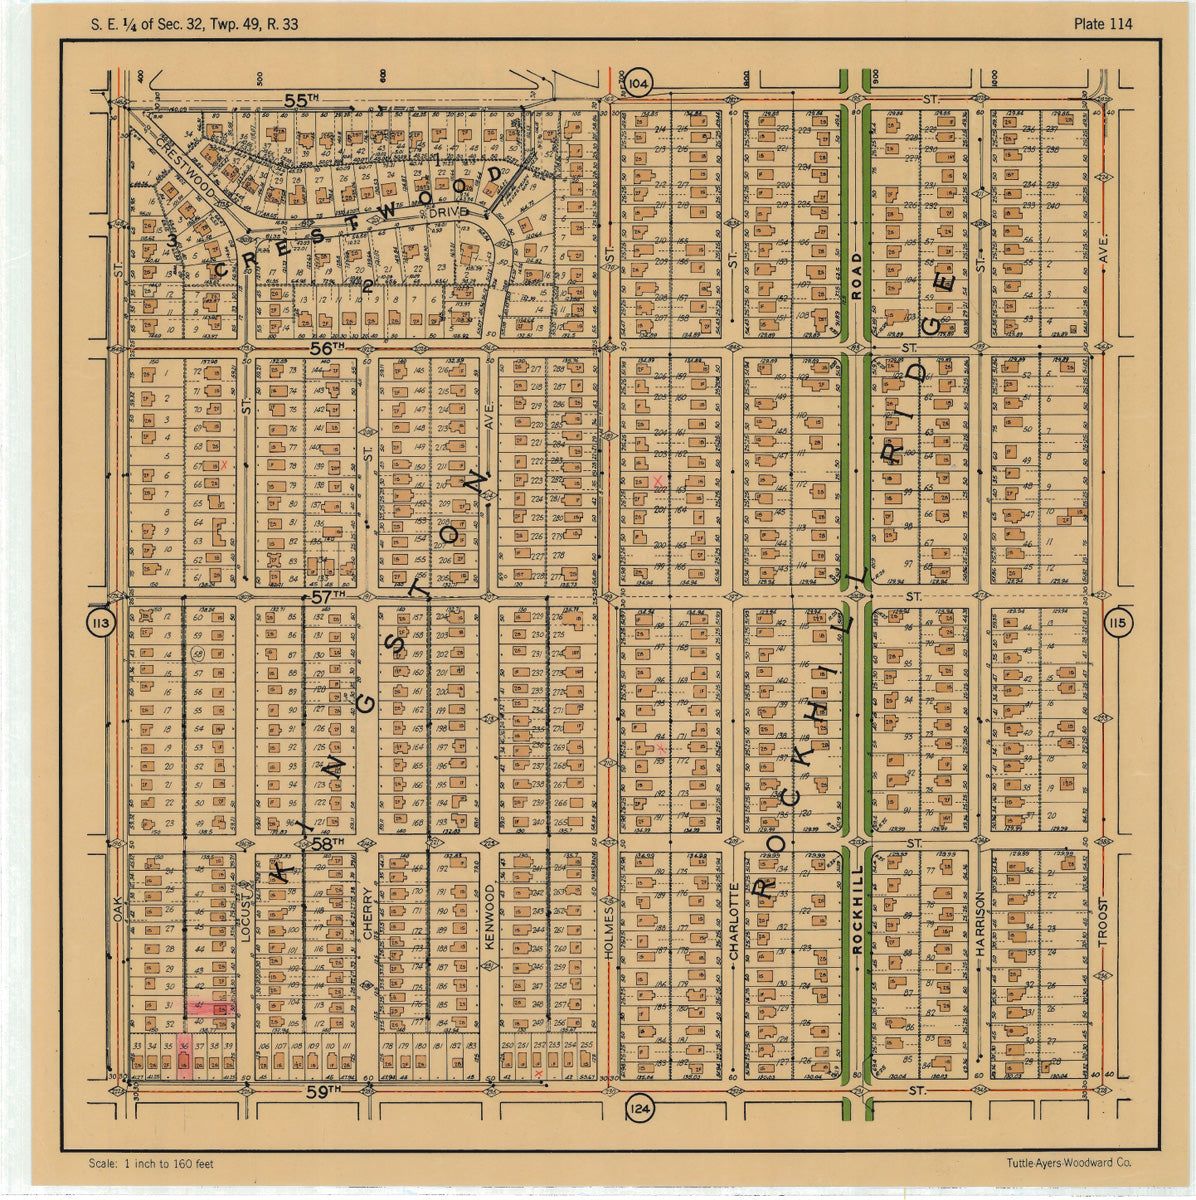 Kansas City 1925 Neighborhood Map - Plate #114 55th-59th Oak-Troost